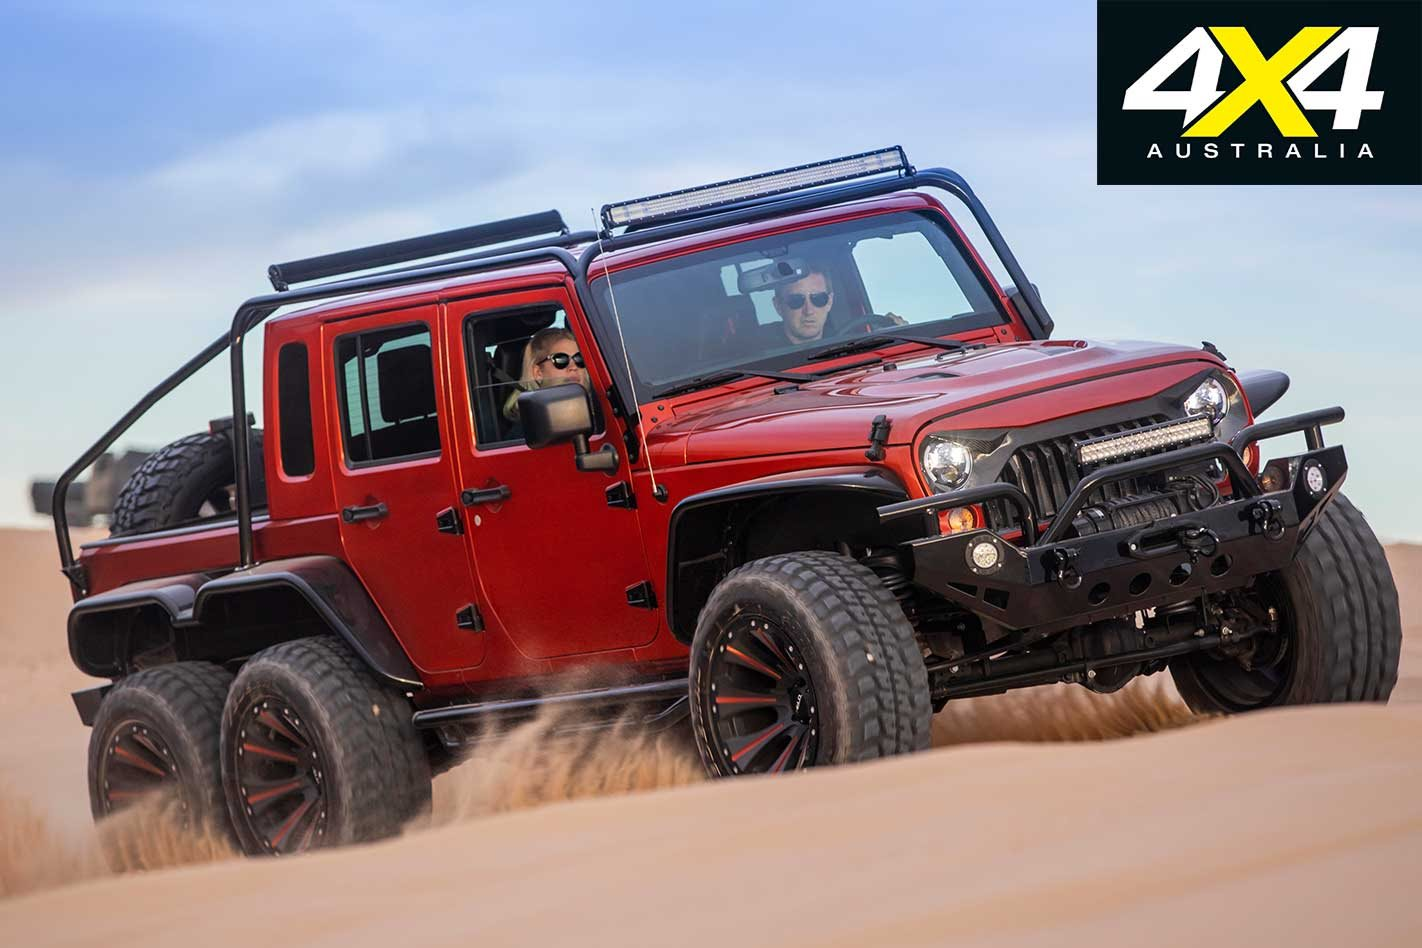 Hellcat V8 powered Jeep JK Wrangler 6x6 ute feature | 4x4